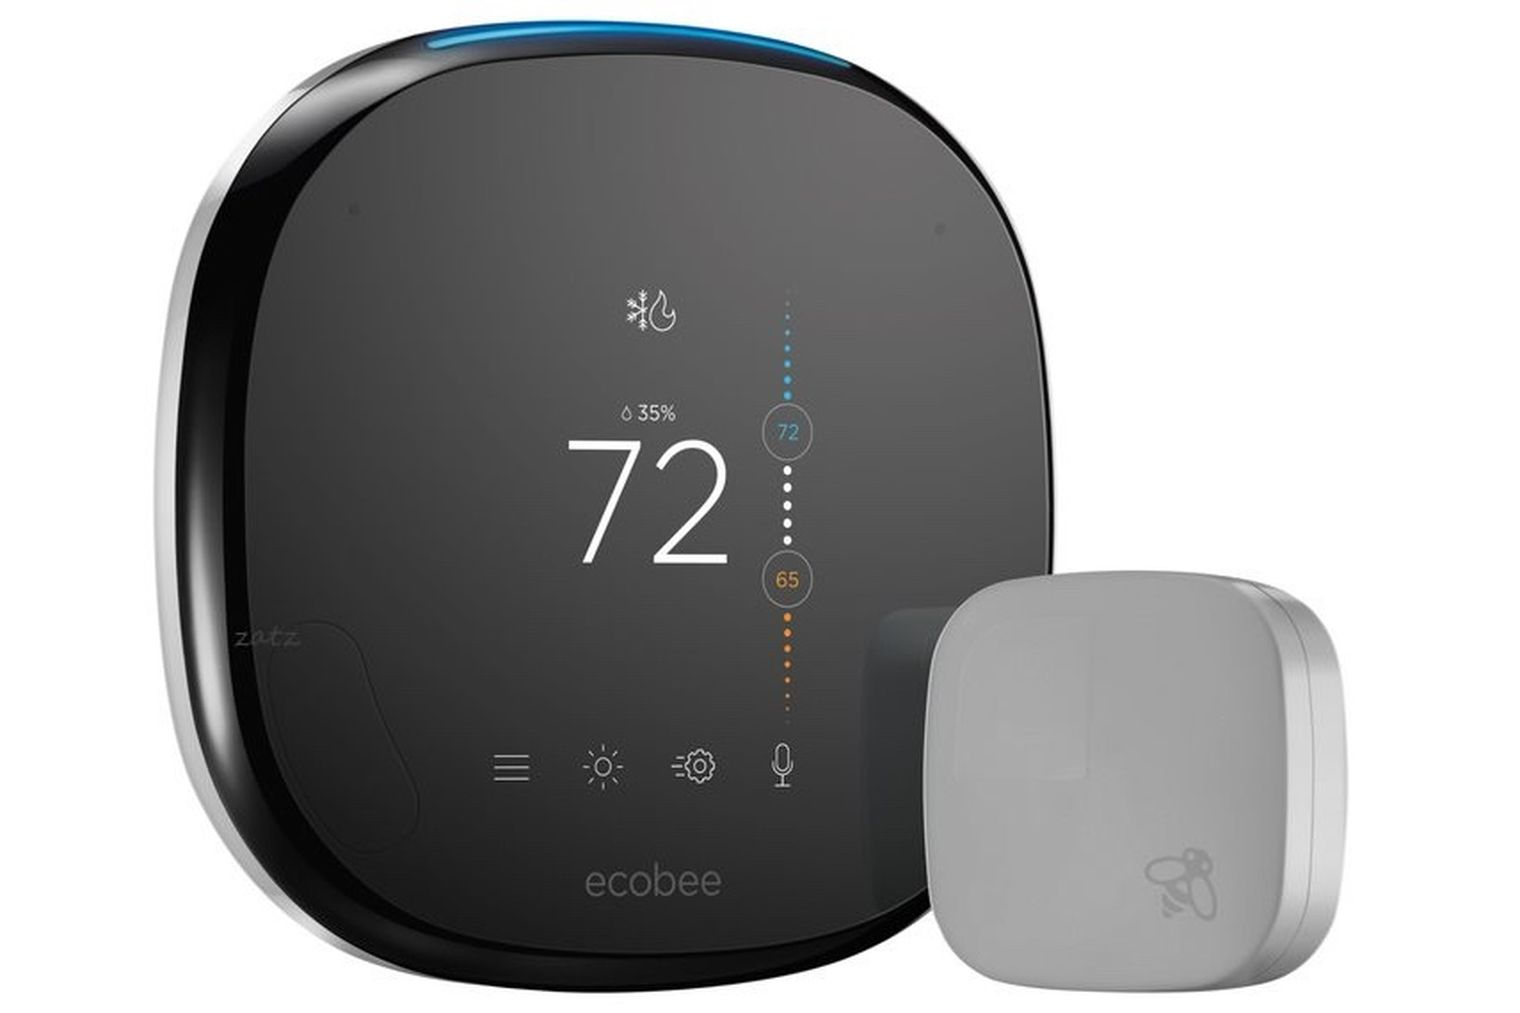 Ecobee4 Homekit Thermostat Teased Ahead Of May 3 Unveiling